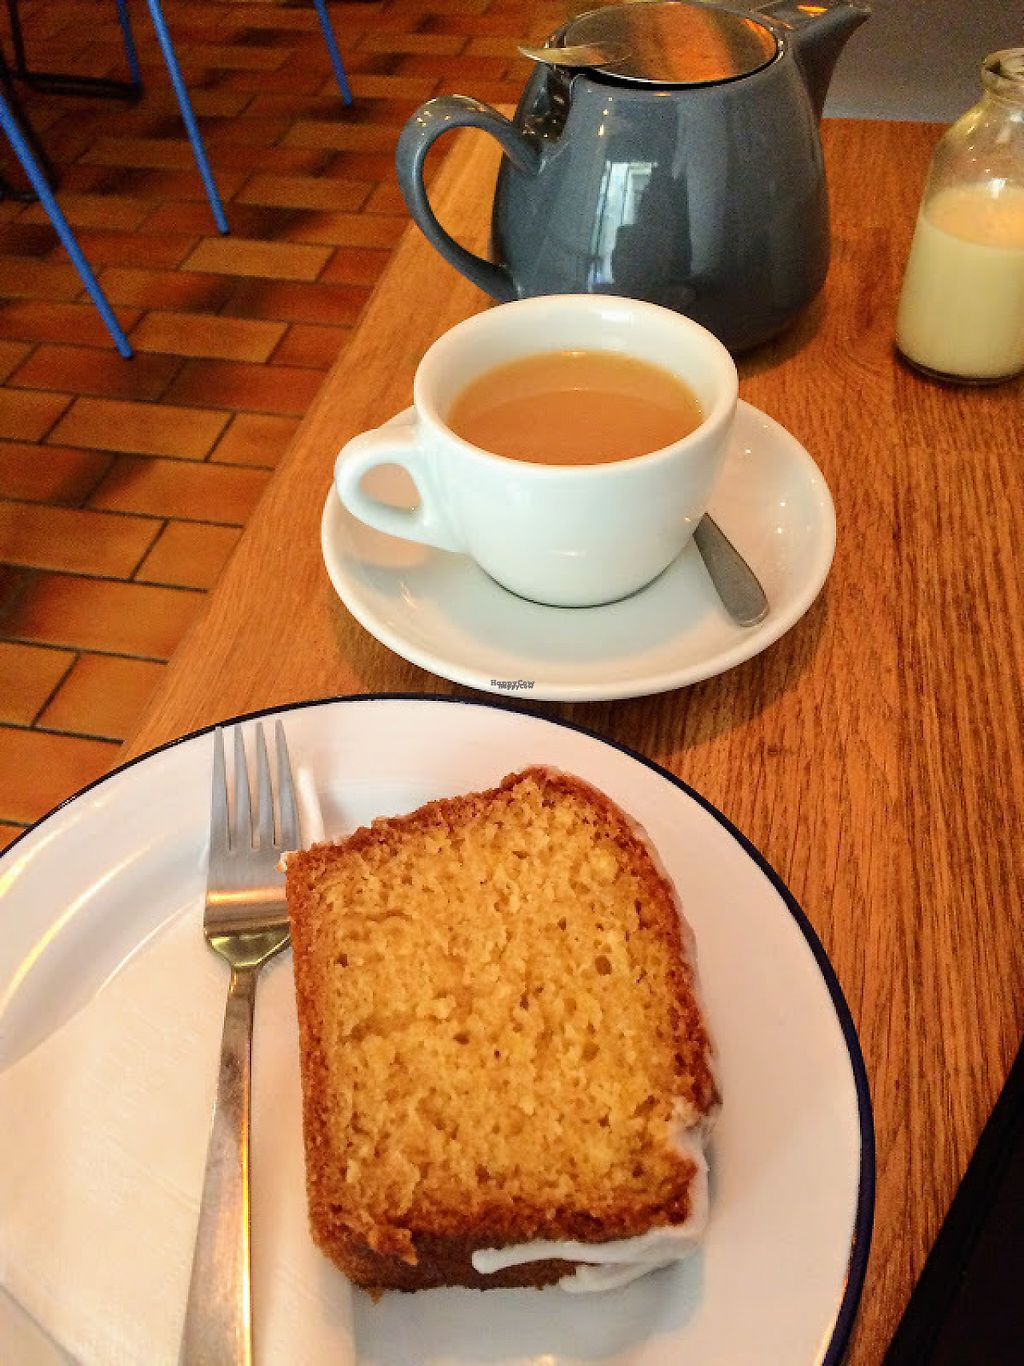 """Photo of Mana Espresso  by <a href=""""/members/profile/sophiecow"""">sophiecow</a> <br/>The most delicious vegan iced lemon cake and a pot of earl grey tea with soya milk <br/> February 14, 2017  - <a href='/contact/abuse/image/86875/226579'>Report</a>"""